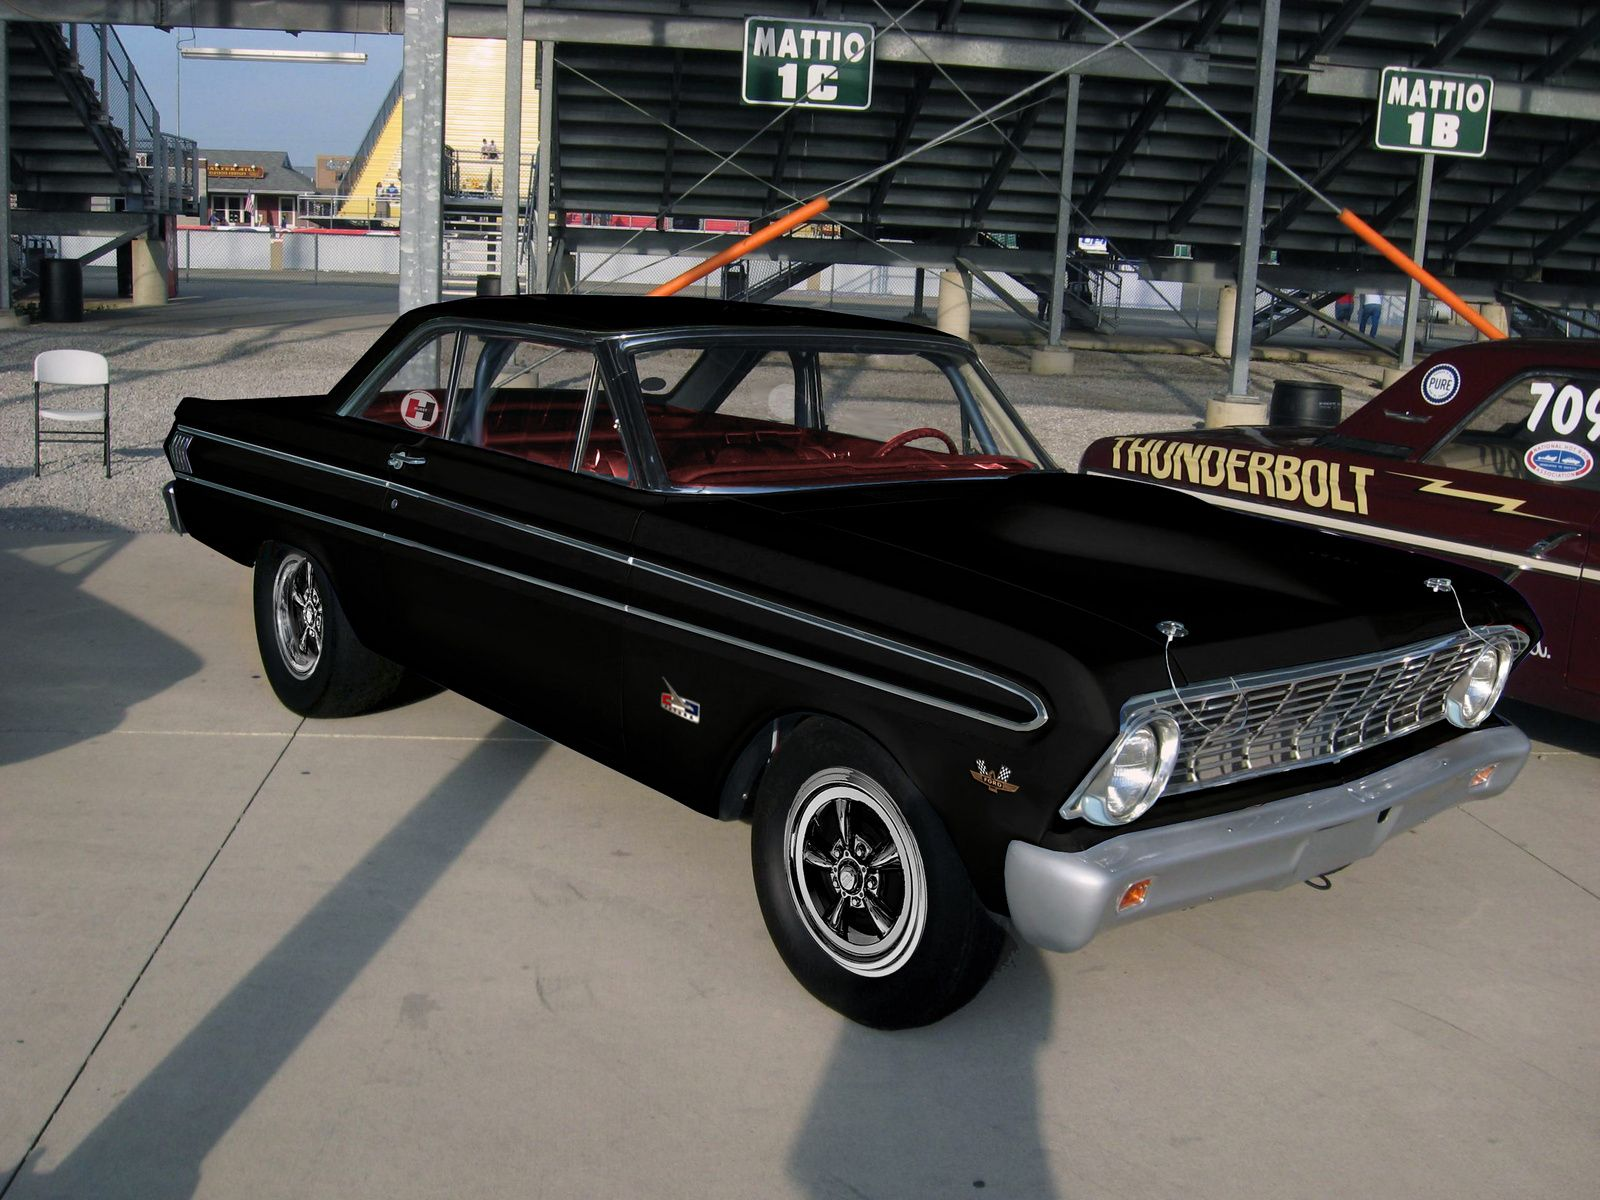 1961 ford falcon for sale racingjunk classifieds - 1964 Ford Falcon Sprint Cars Pinterest Ford Falcon Falcons And Ford